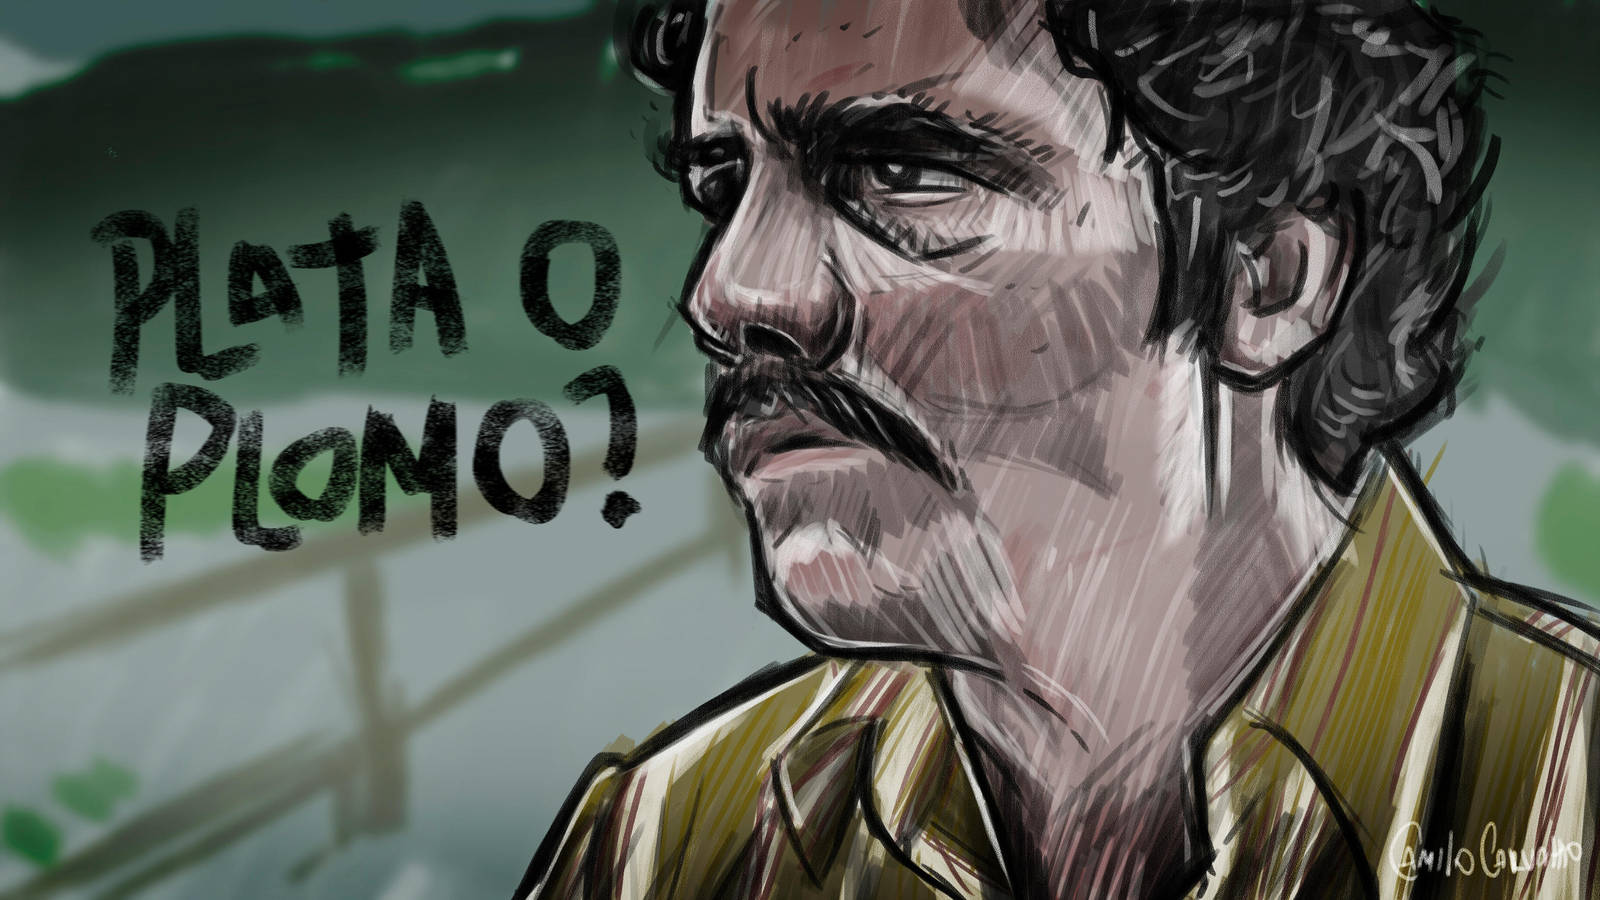 Pablo Escobar Narcos Wallpaper 2493816 Zerochan Anime